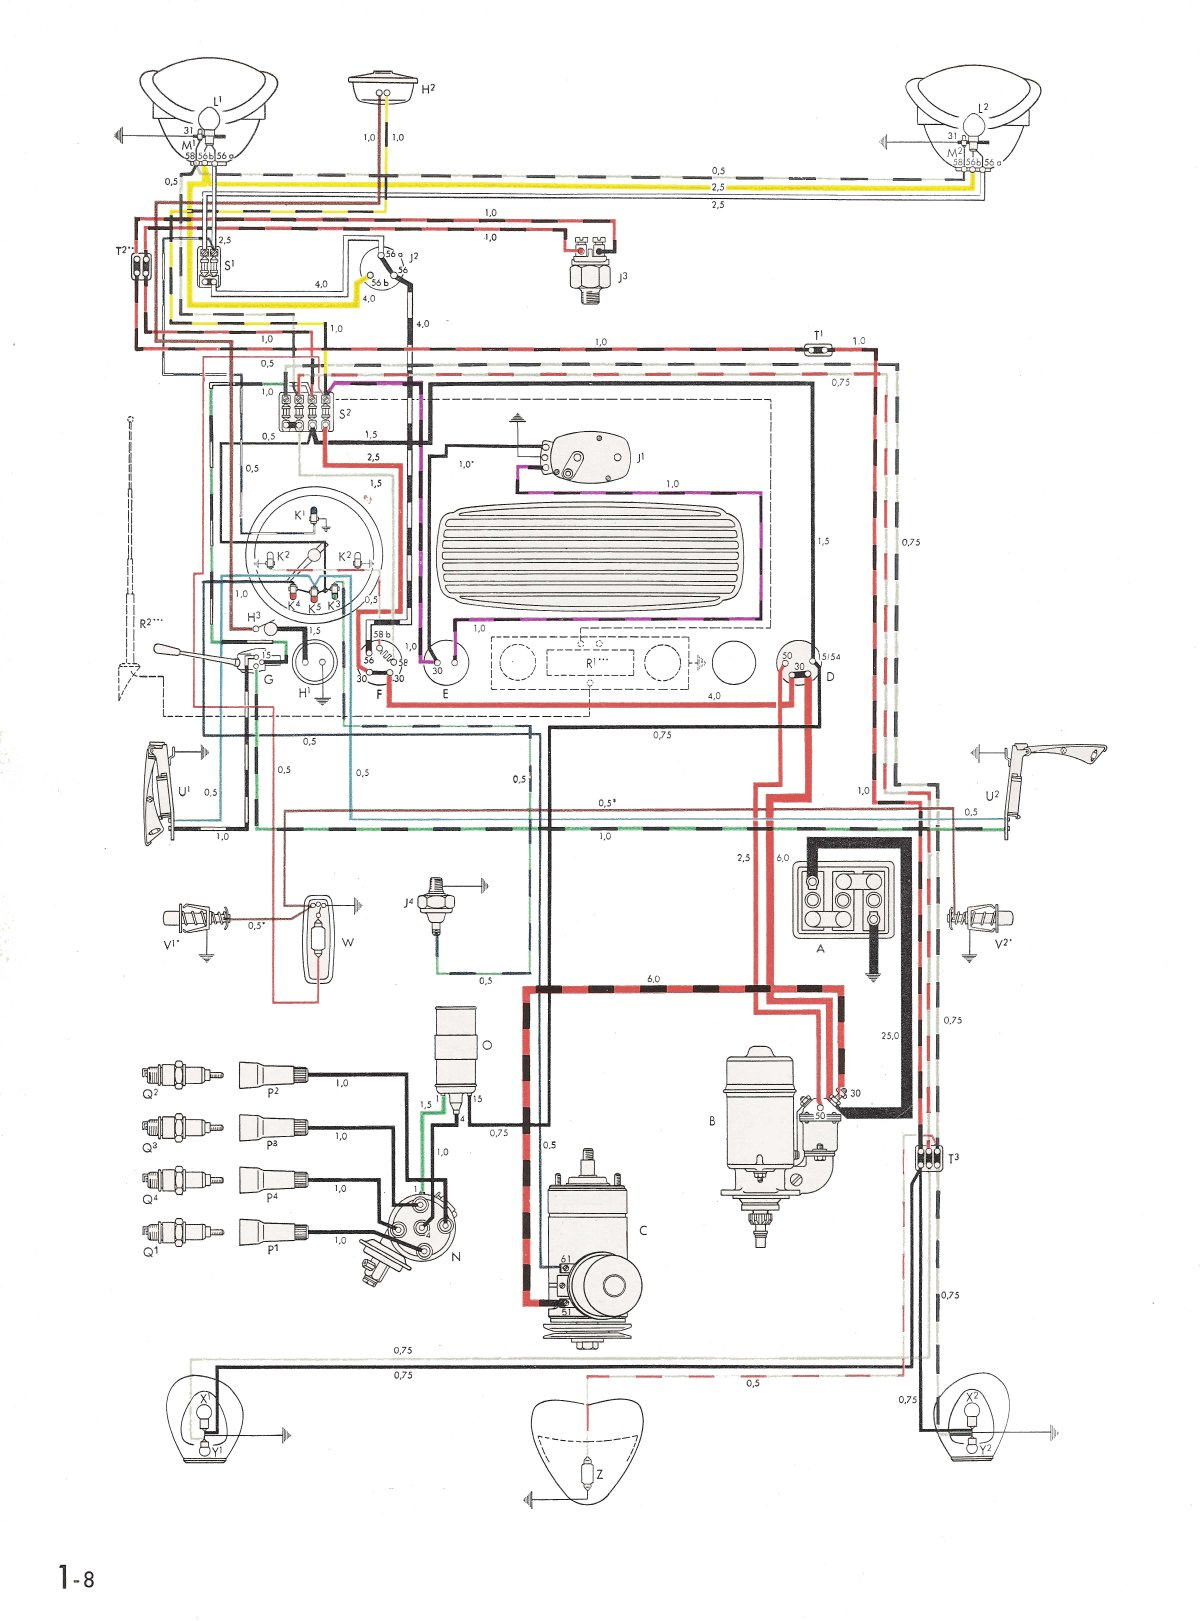 jvc kd g210 wiring diagram vga to s video wire diagram JVC KD R330 Wiring-Diagram  Firestik Wiring Diagram JVC Harness Diagram Radio Wiring